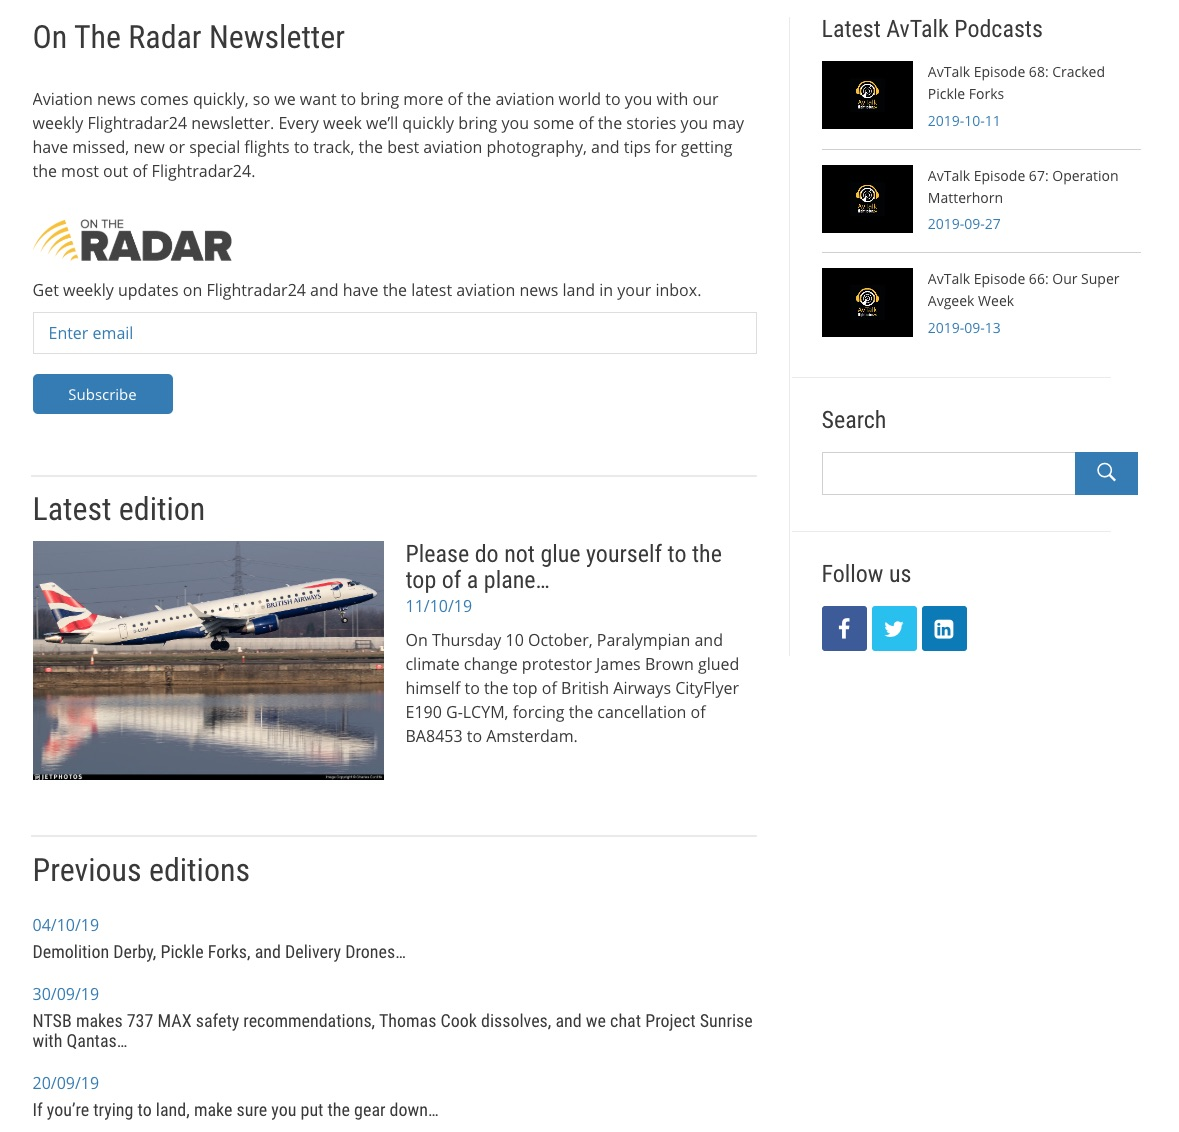 On the Radar newsletter page on the updated Flightradar24 blog